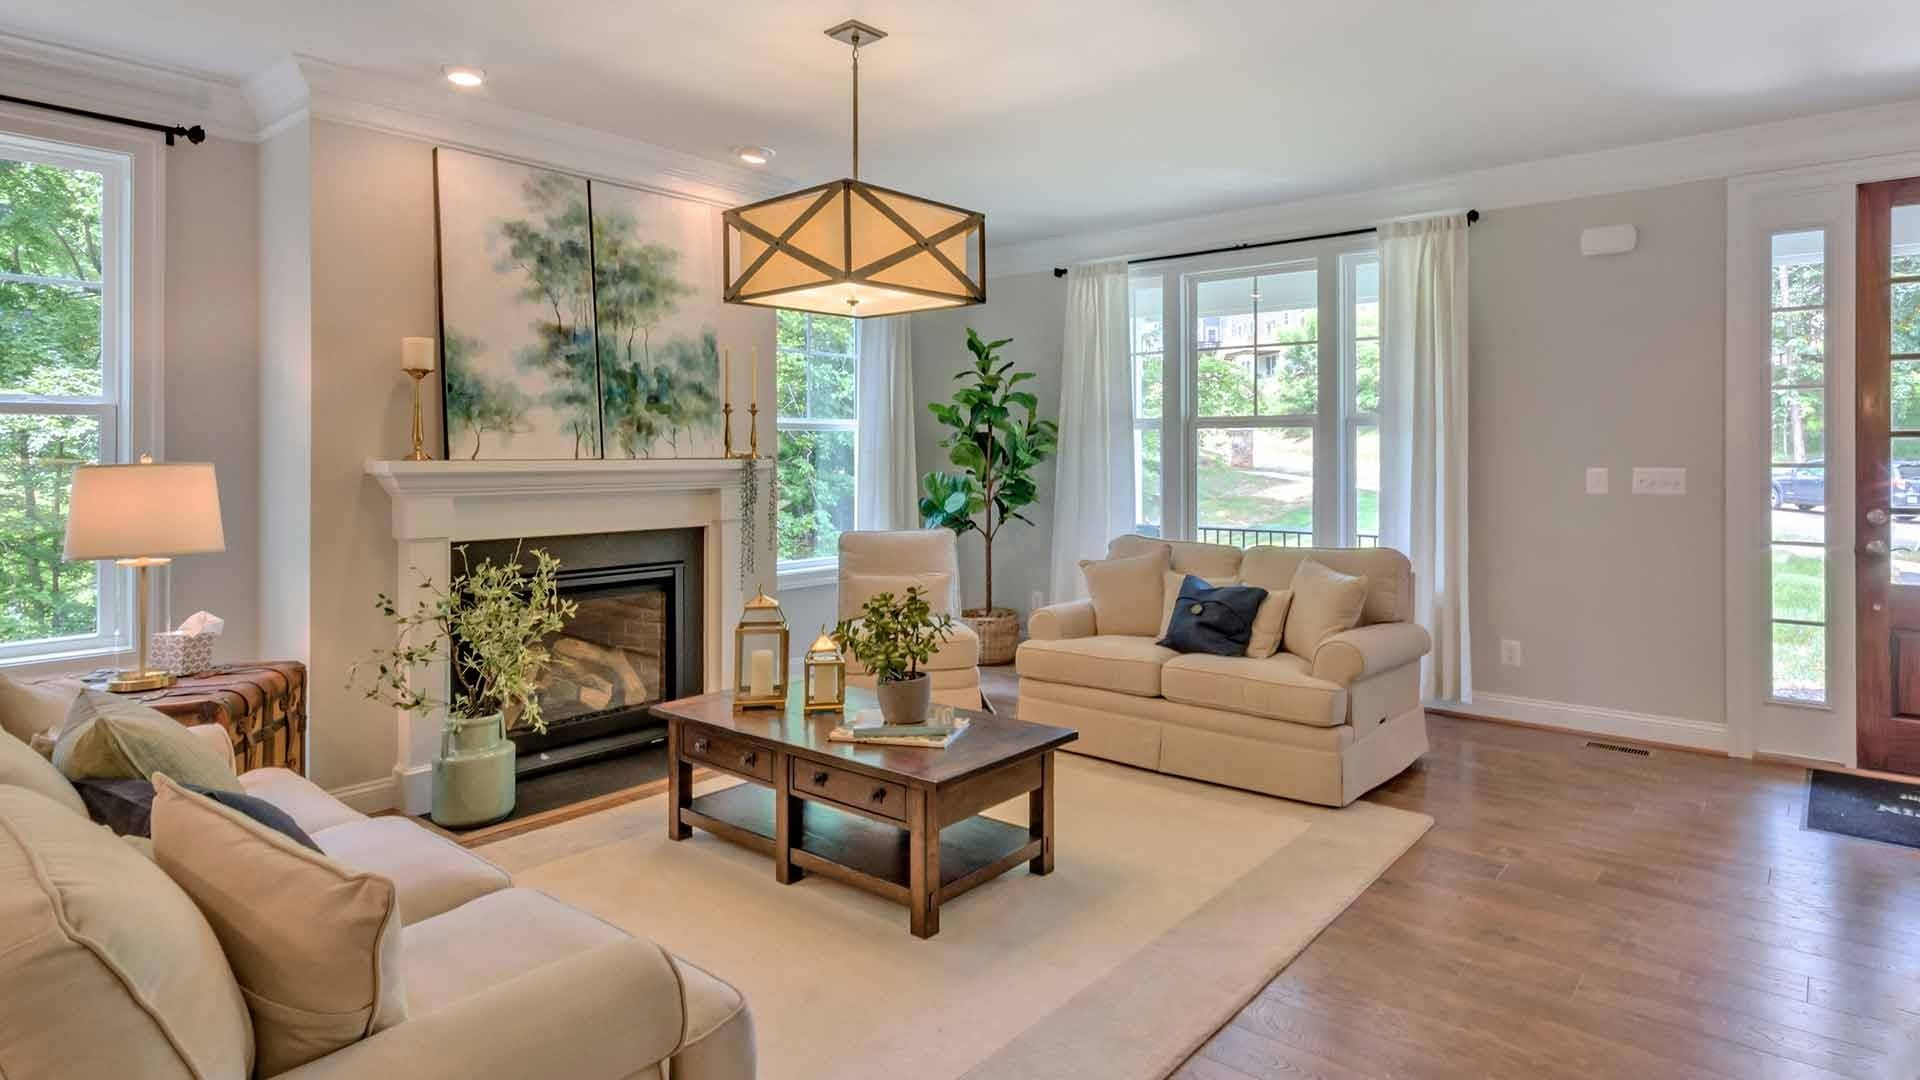 A distinctive light fixture is a focal point in this sunny great room. The Gardiner, a new home by Stanley Martin Homes. The Villas at Belvedere community. Charlottesville, VA.